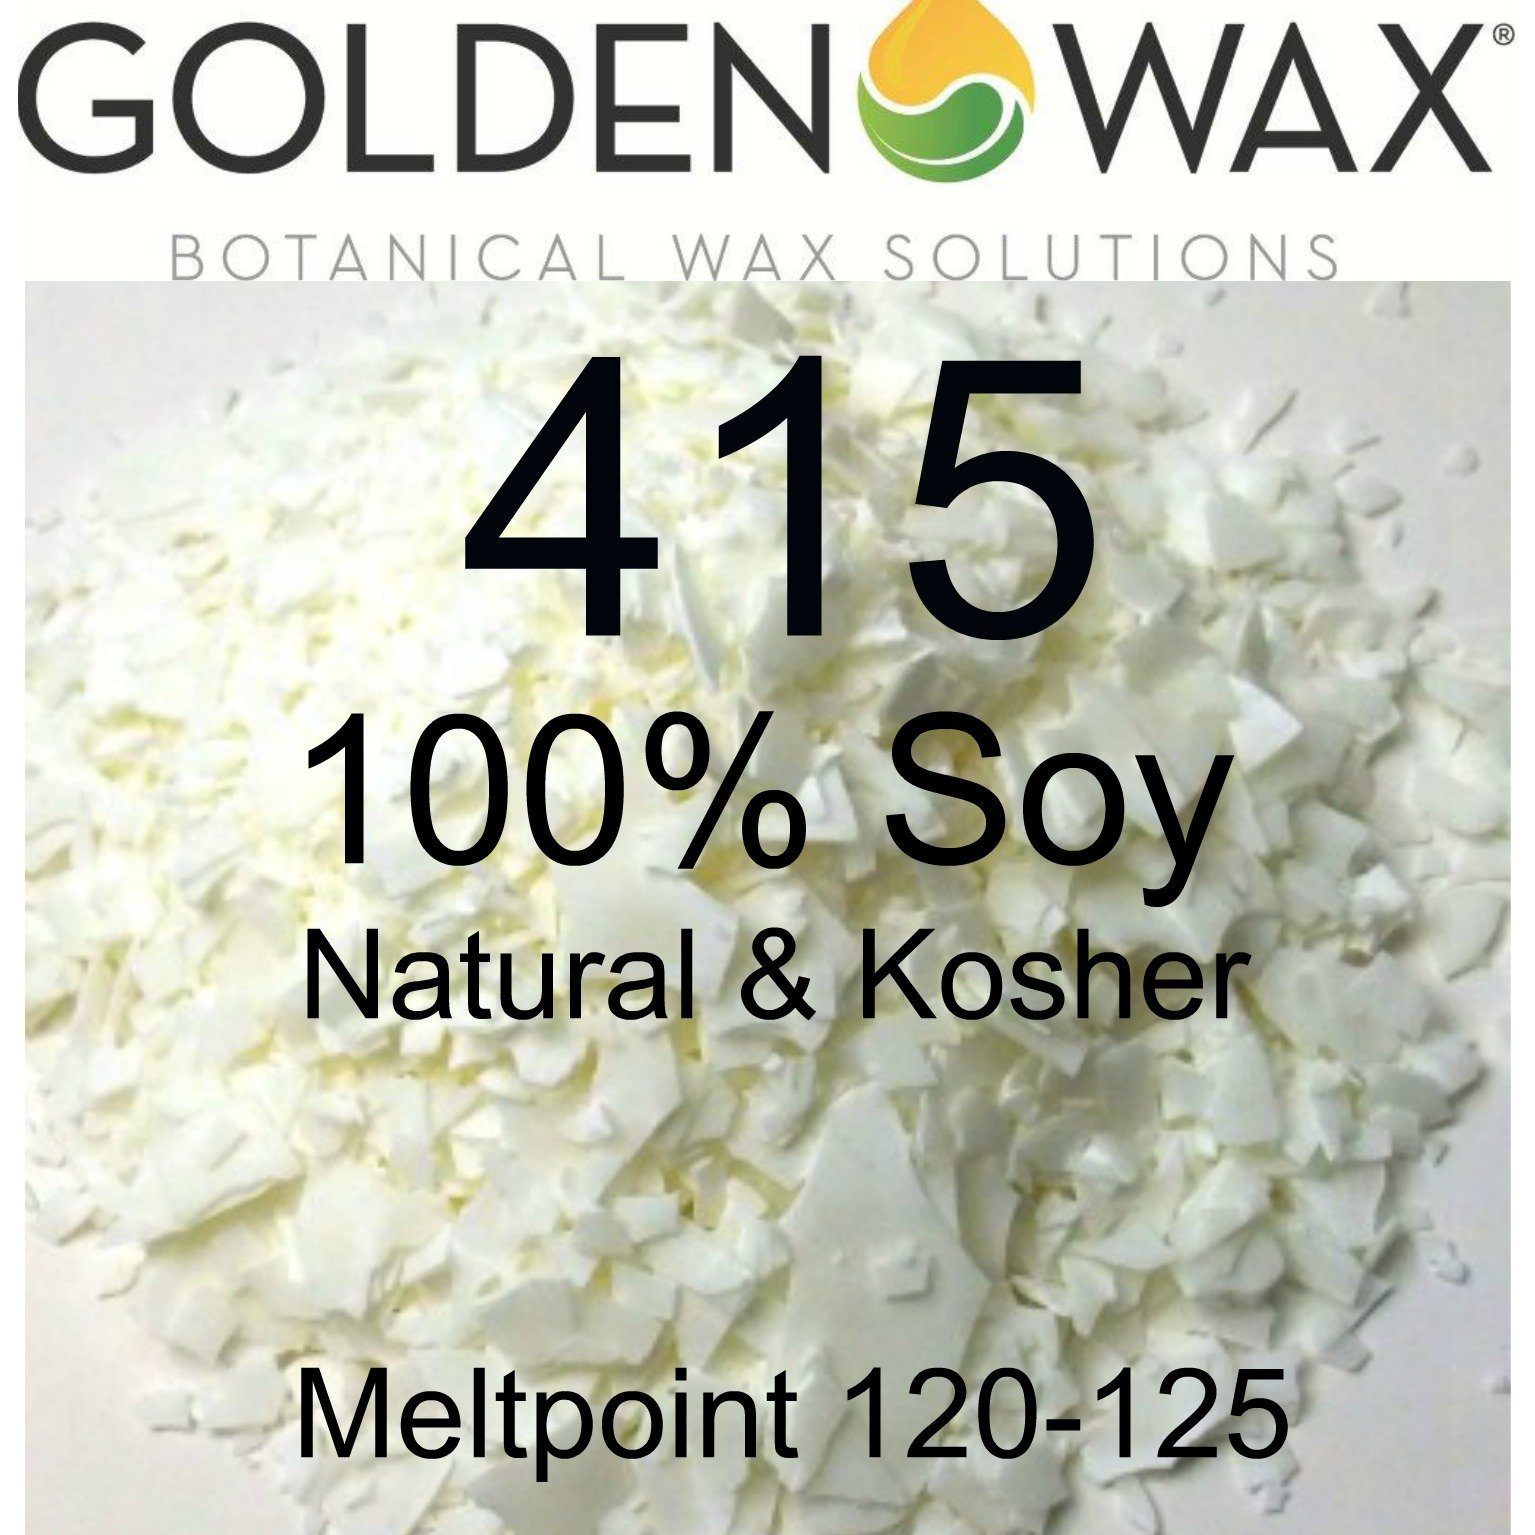 Pack of 1, Golden Brands 415 100% Soy Wax Per 50 Lb. Case for Candles & Tarts, Paraffin, Beeswax Also for Lotions, Creams, Lip Balms